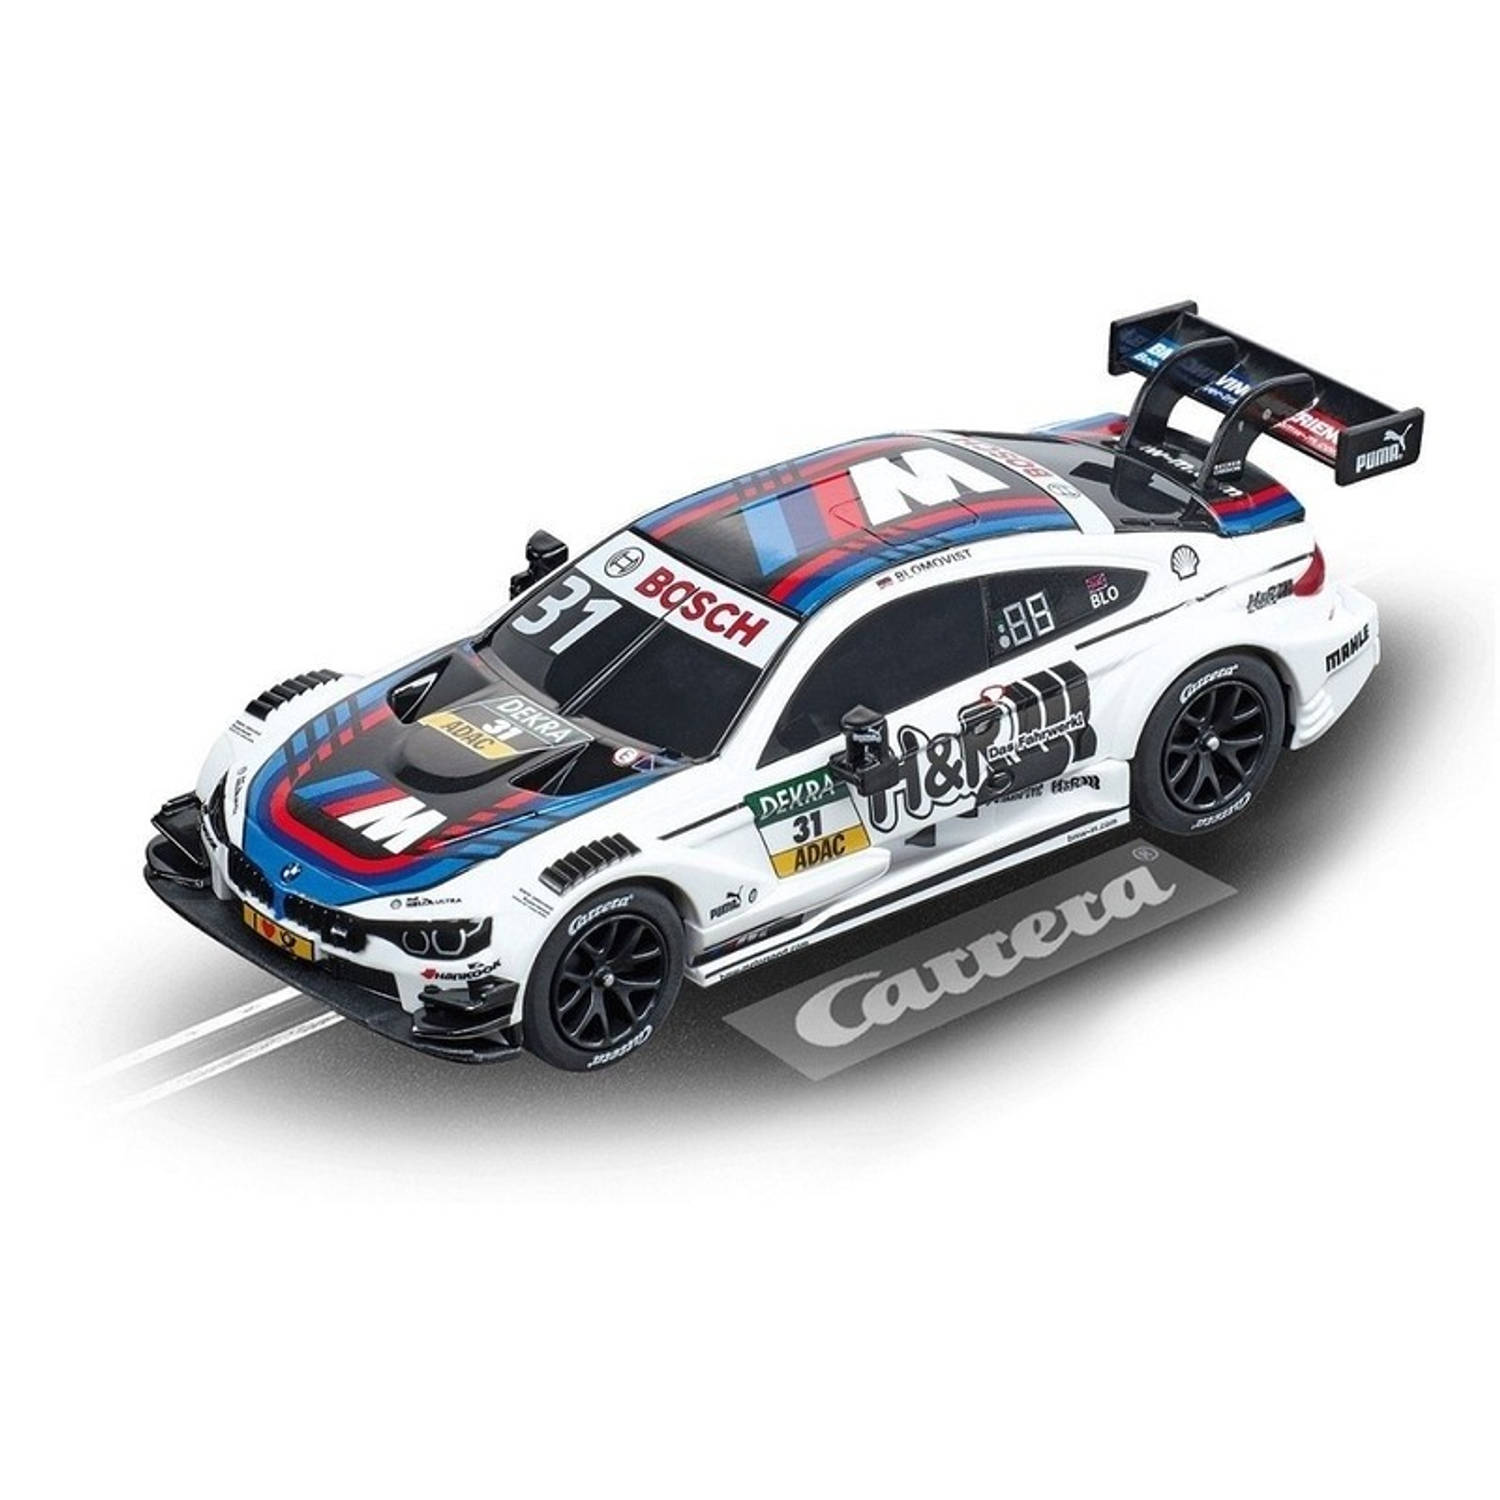 Carrera Digital racebaanauto BMW M4 DTM wit